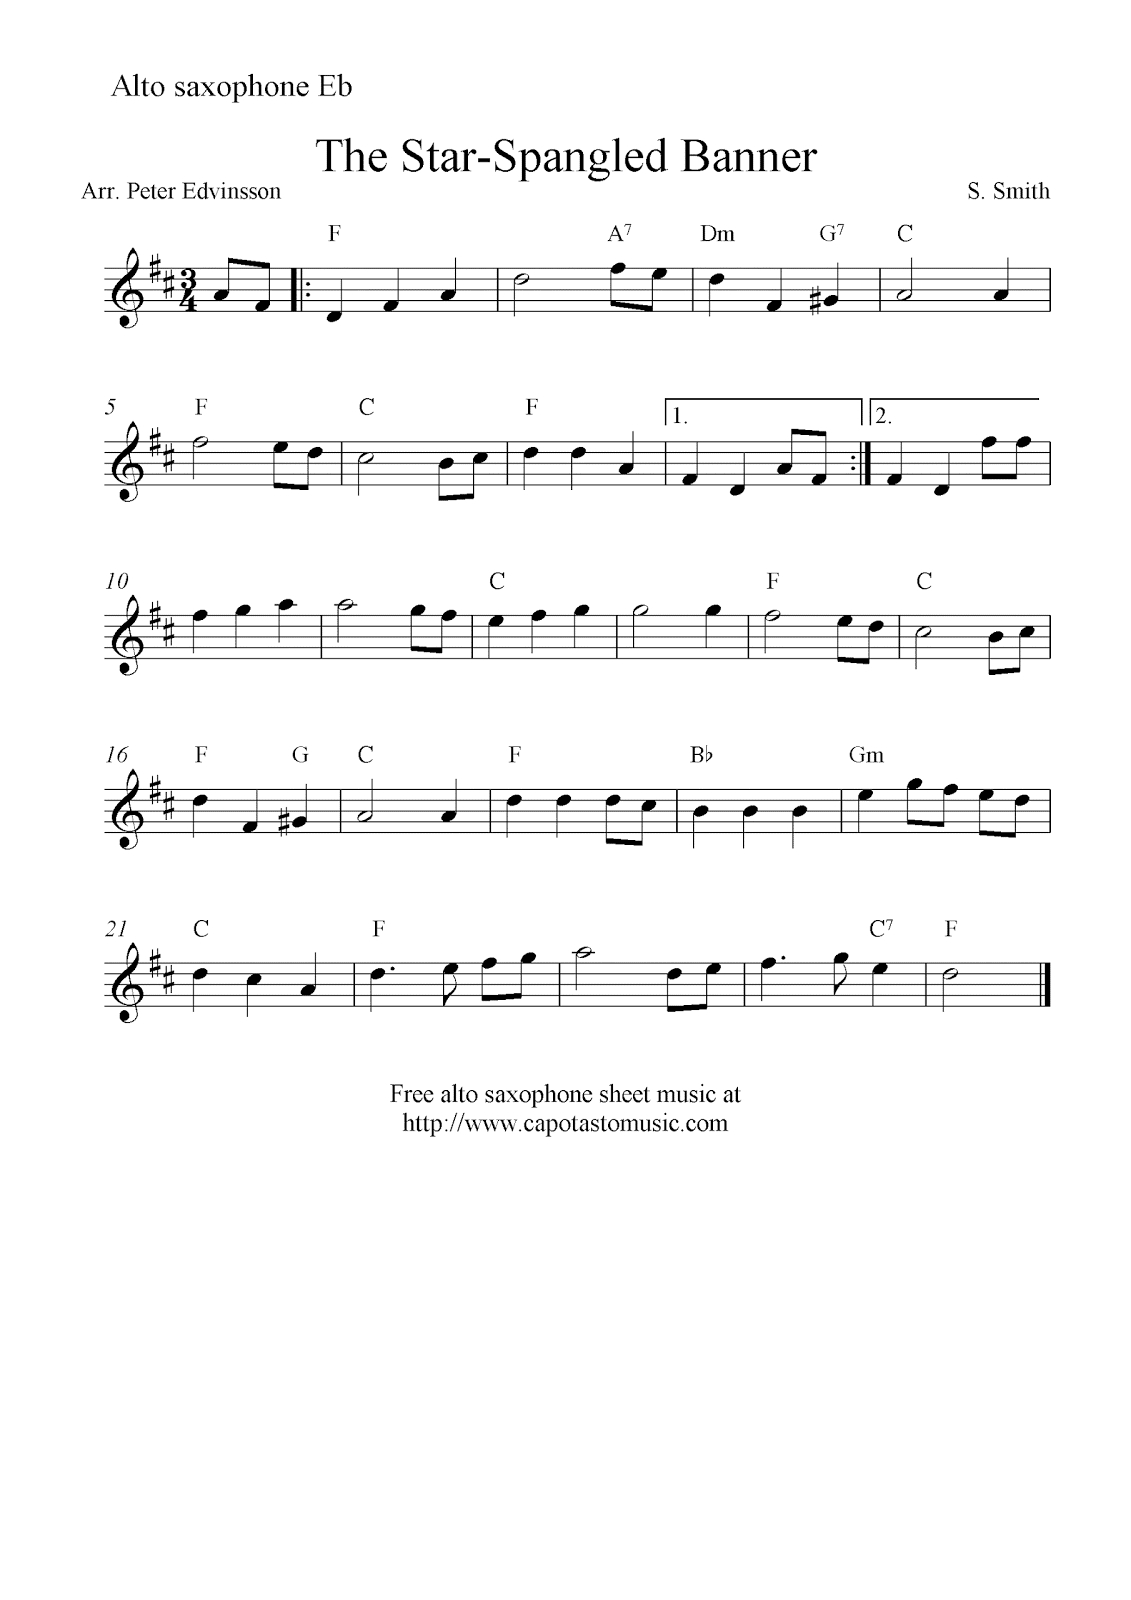 The Star-Spangled Banner, Free Alto Saxophone Sheet Music Notes - Free Printable Piano Sheet Music For The Star Spangled Banner